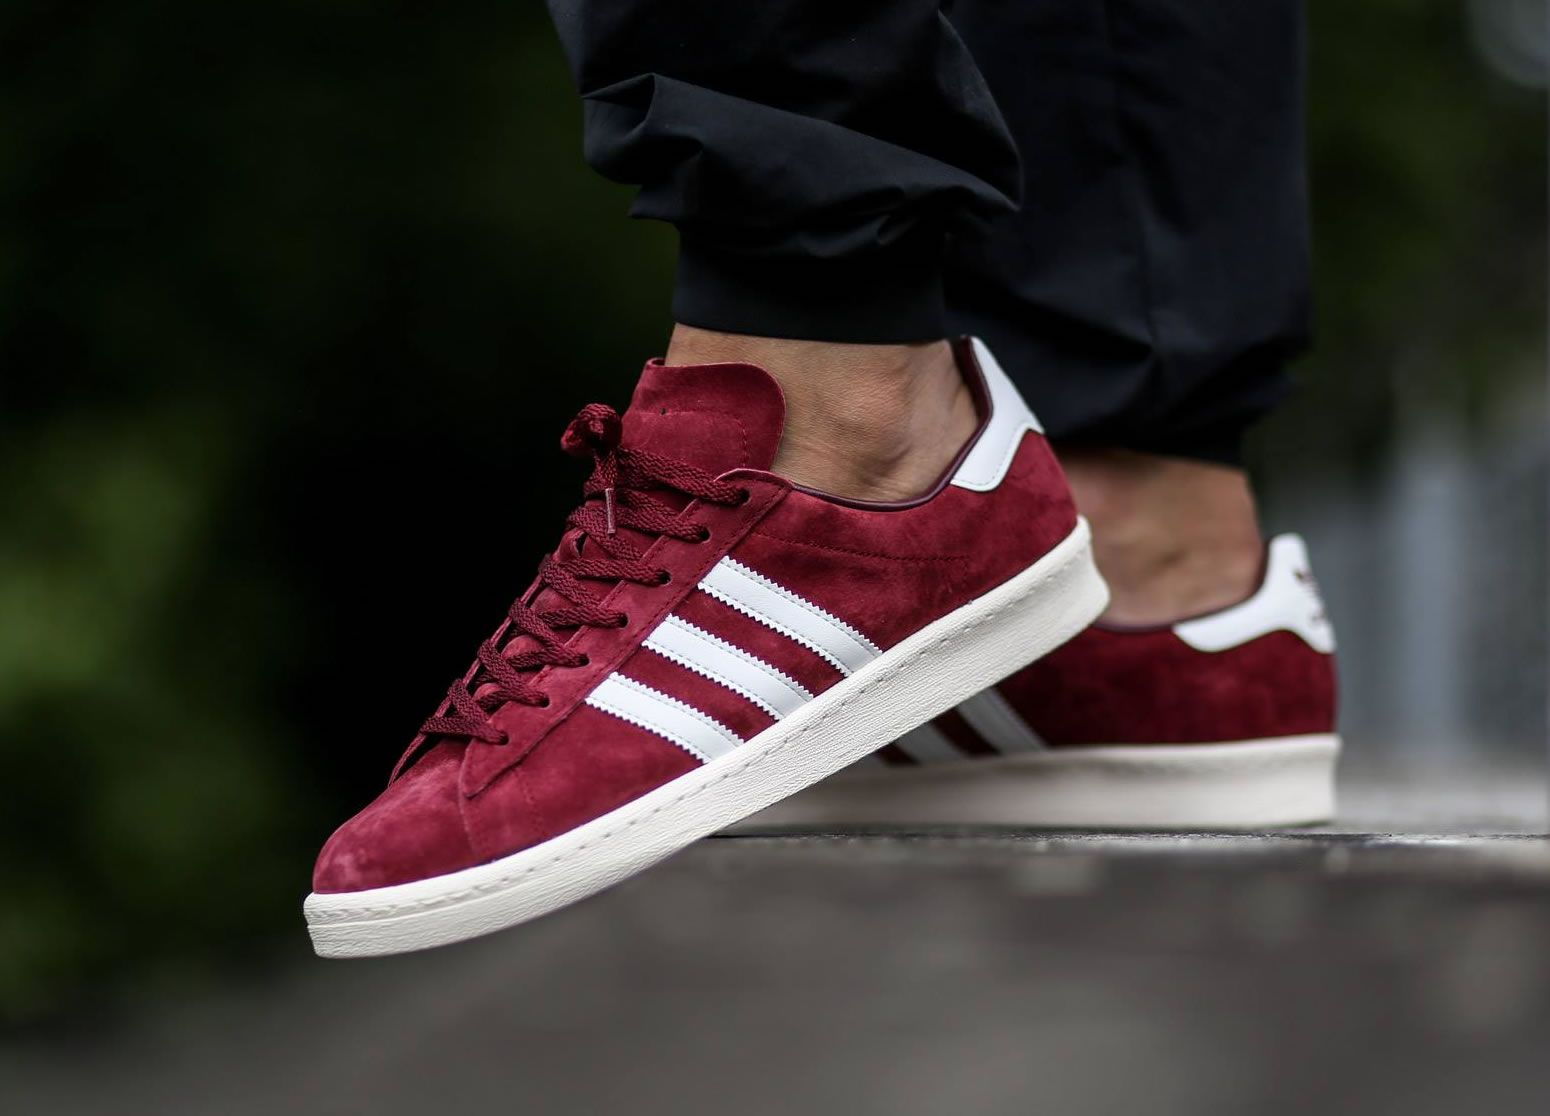 Adidas Originals Campus '80s Suede On Feet #adidas #trainers #sneakers  #adidasoriginals